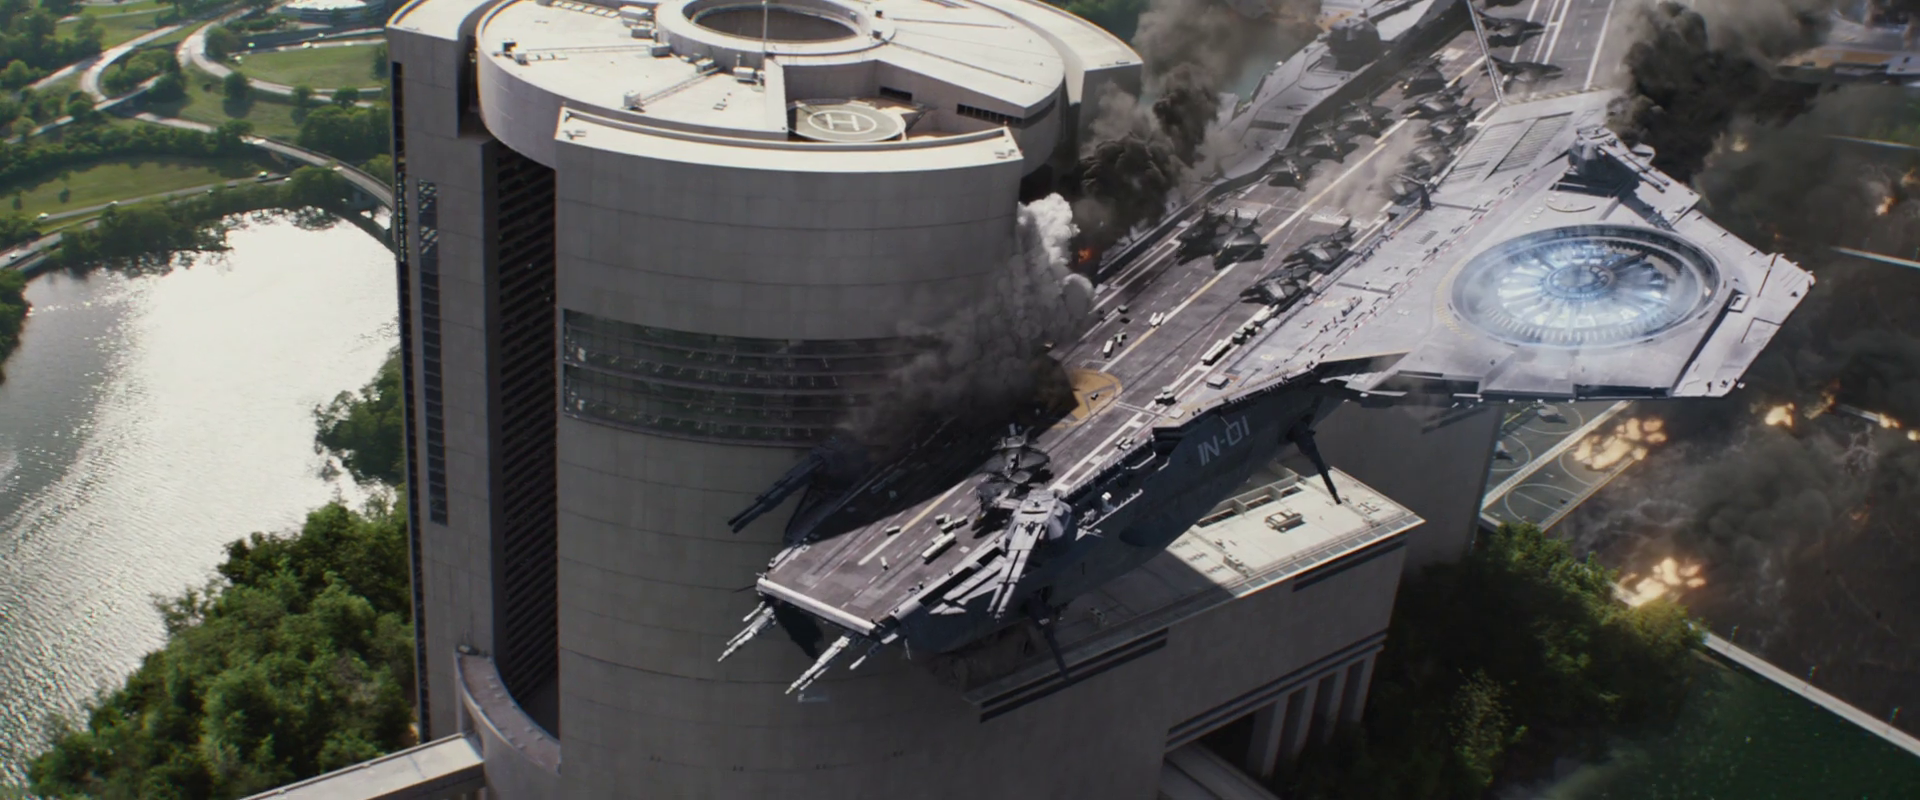 Captain America: Winter Soldier  (2014), helicarrier crash into the easst side of the Triskelion.